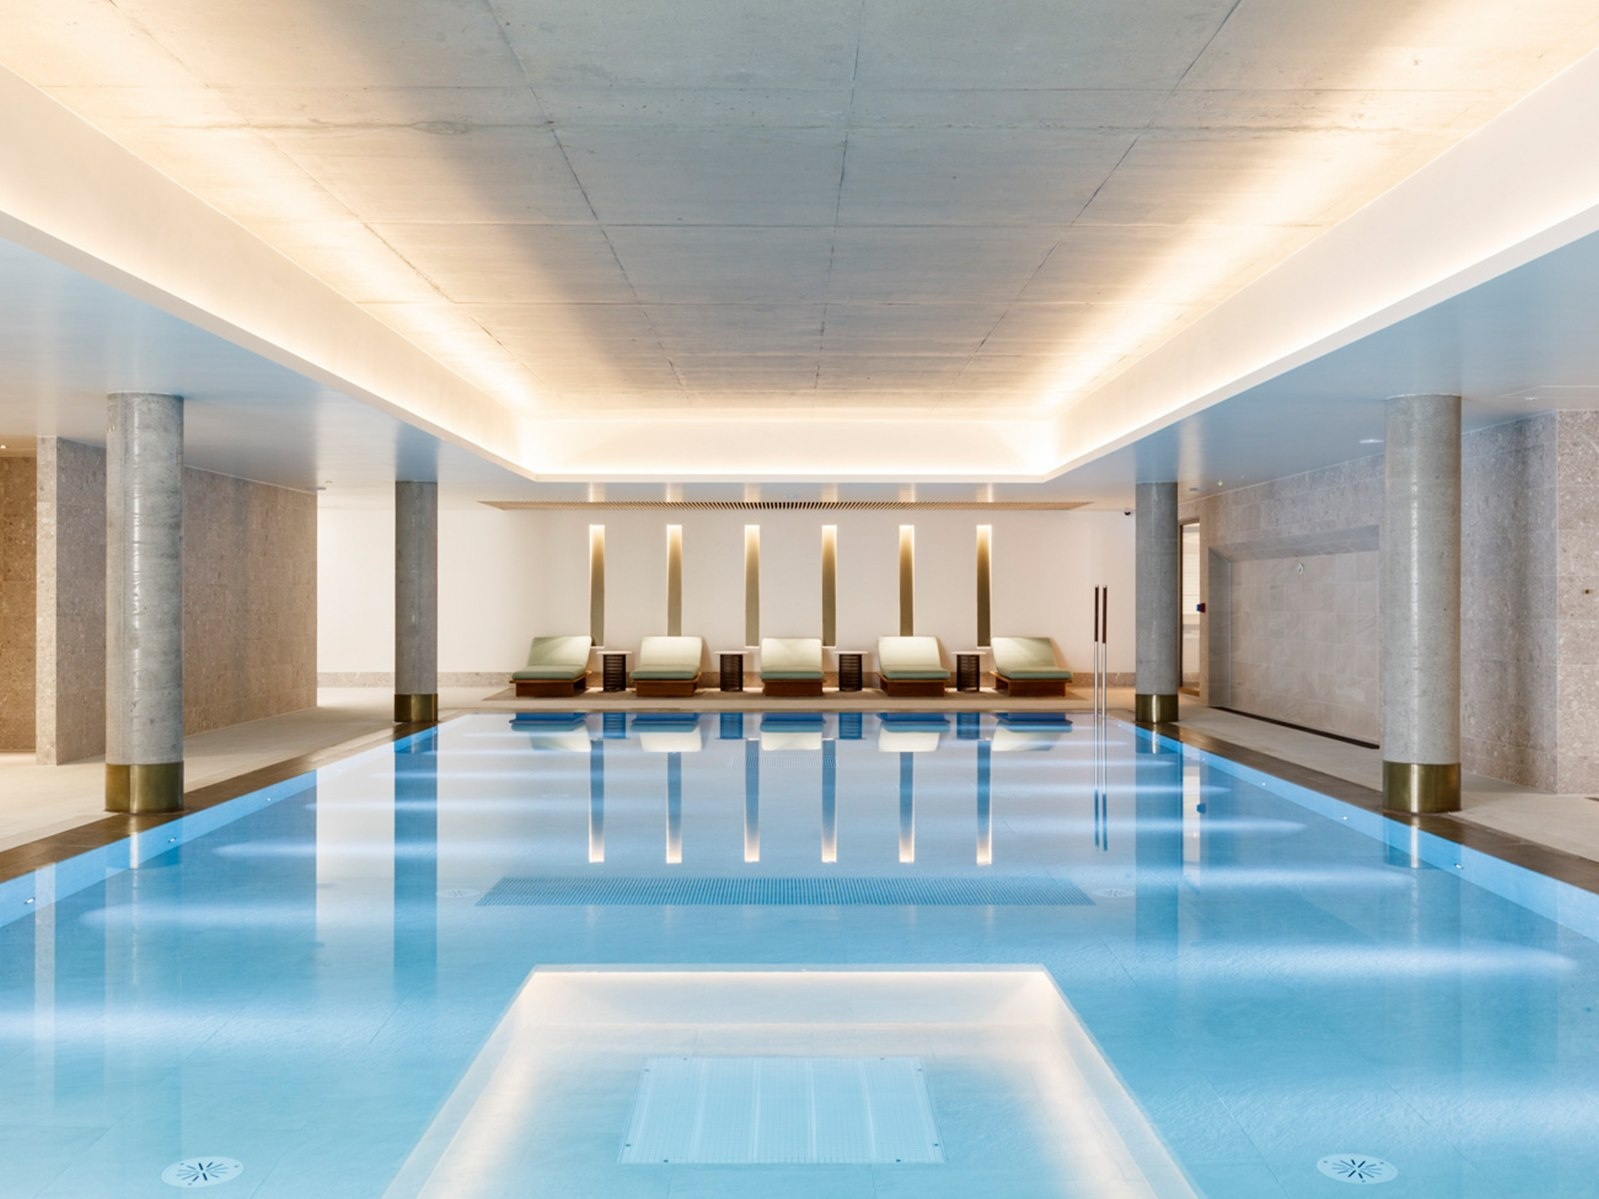 The health club and the gym now open in Battersea